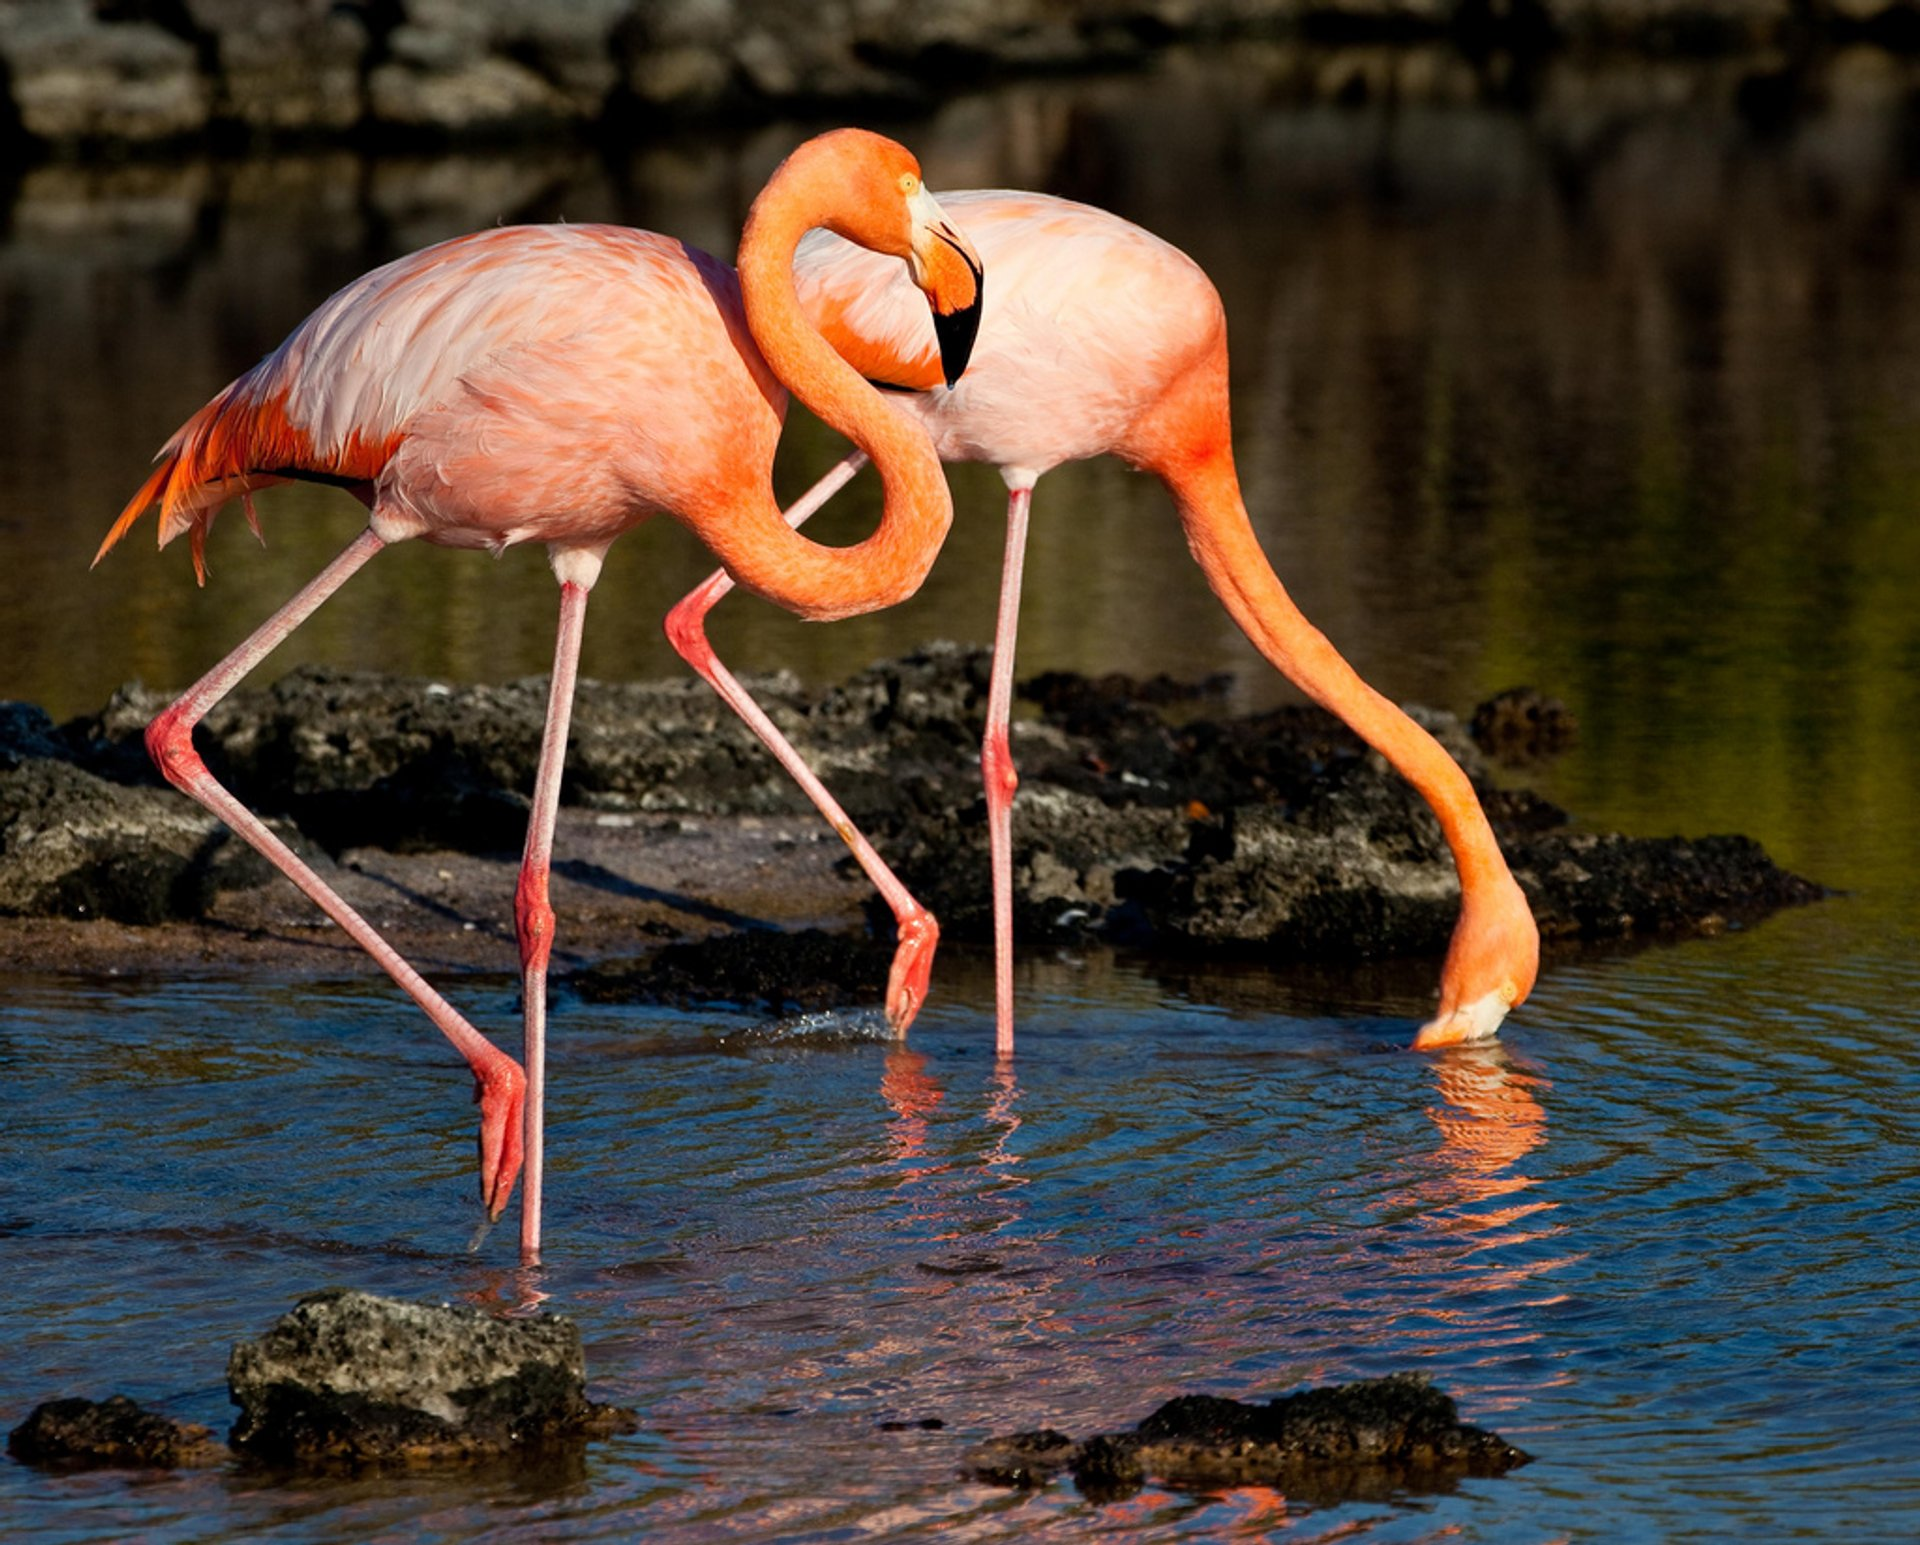 Galapagos Flamingos Courtship Dances in Galapagos Islands - Best Season 2019